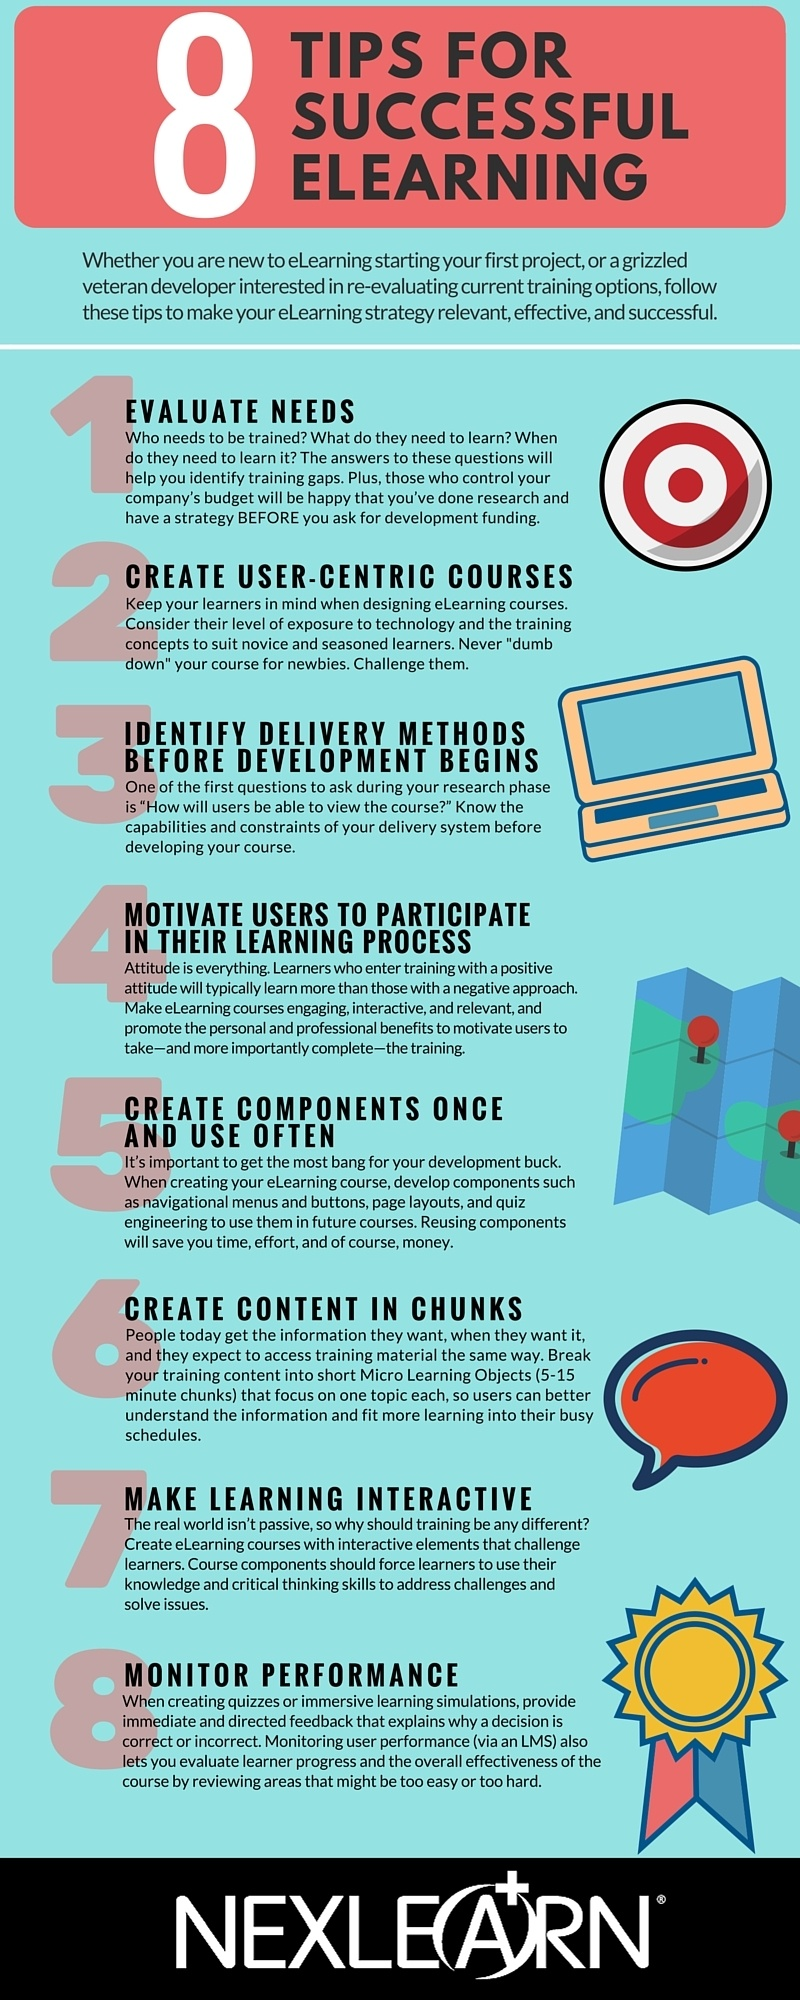 8 Tips for Successful eLearning Infographic